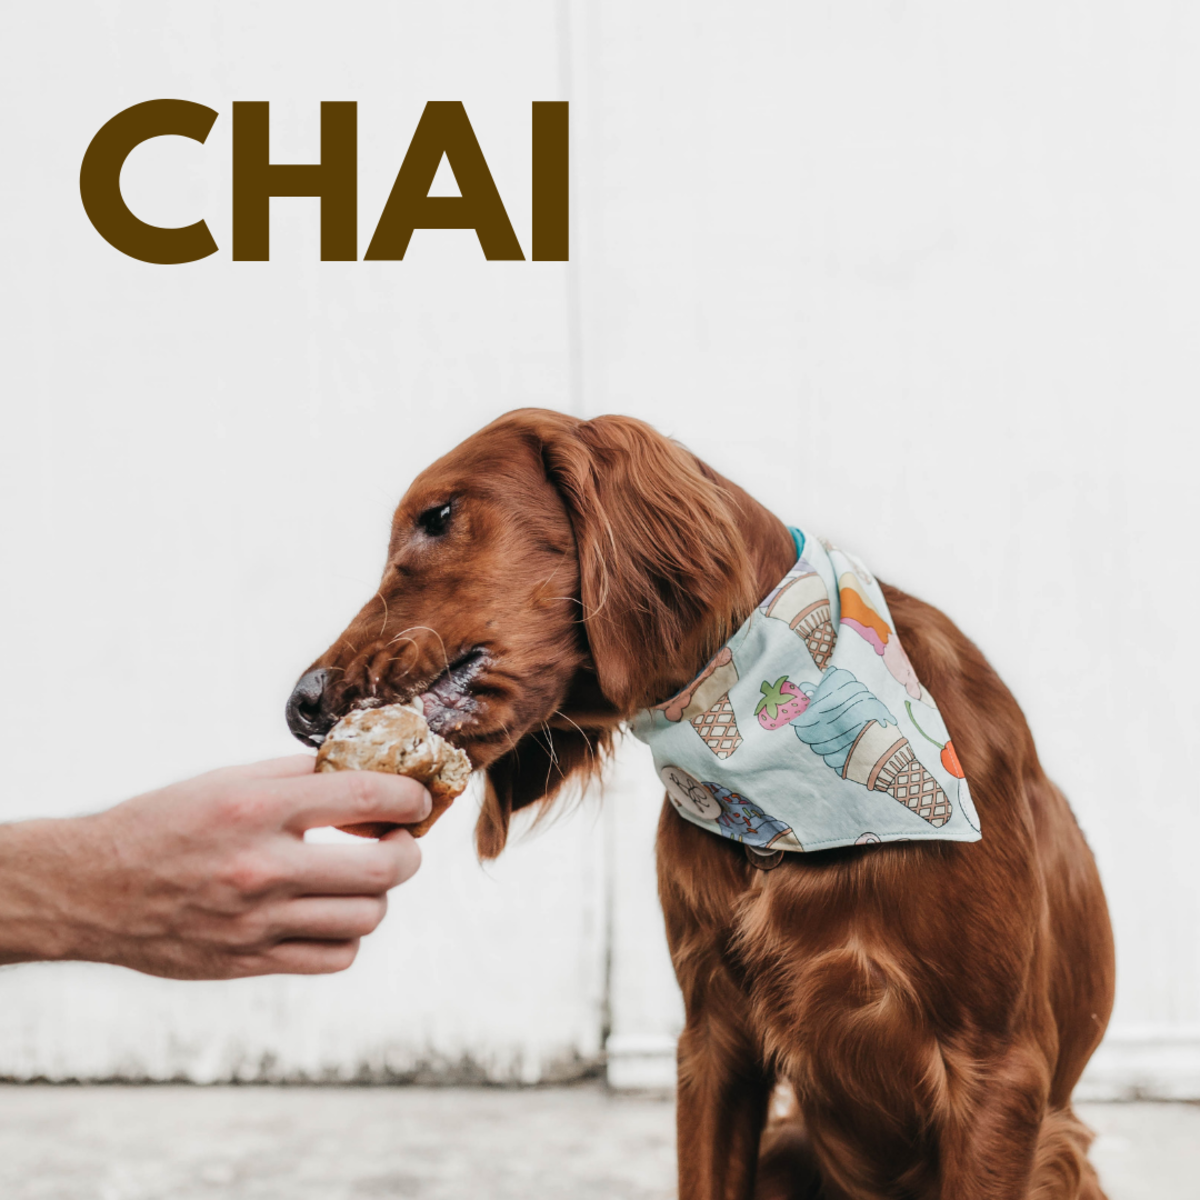 Is she a Chai?